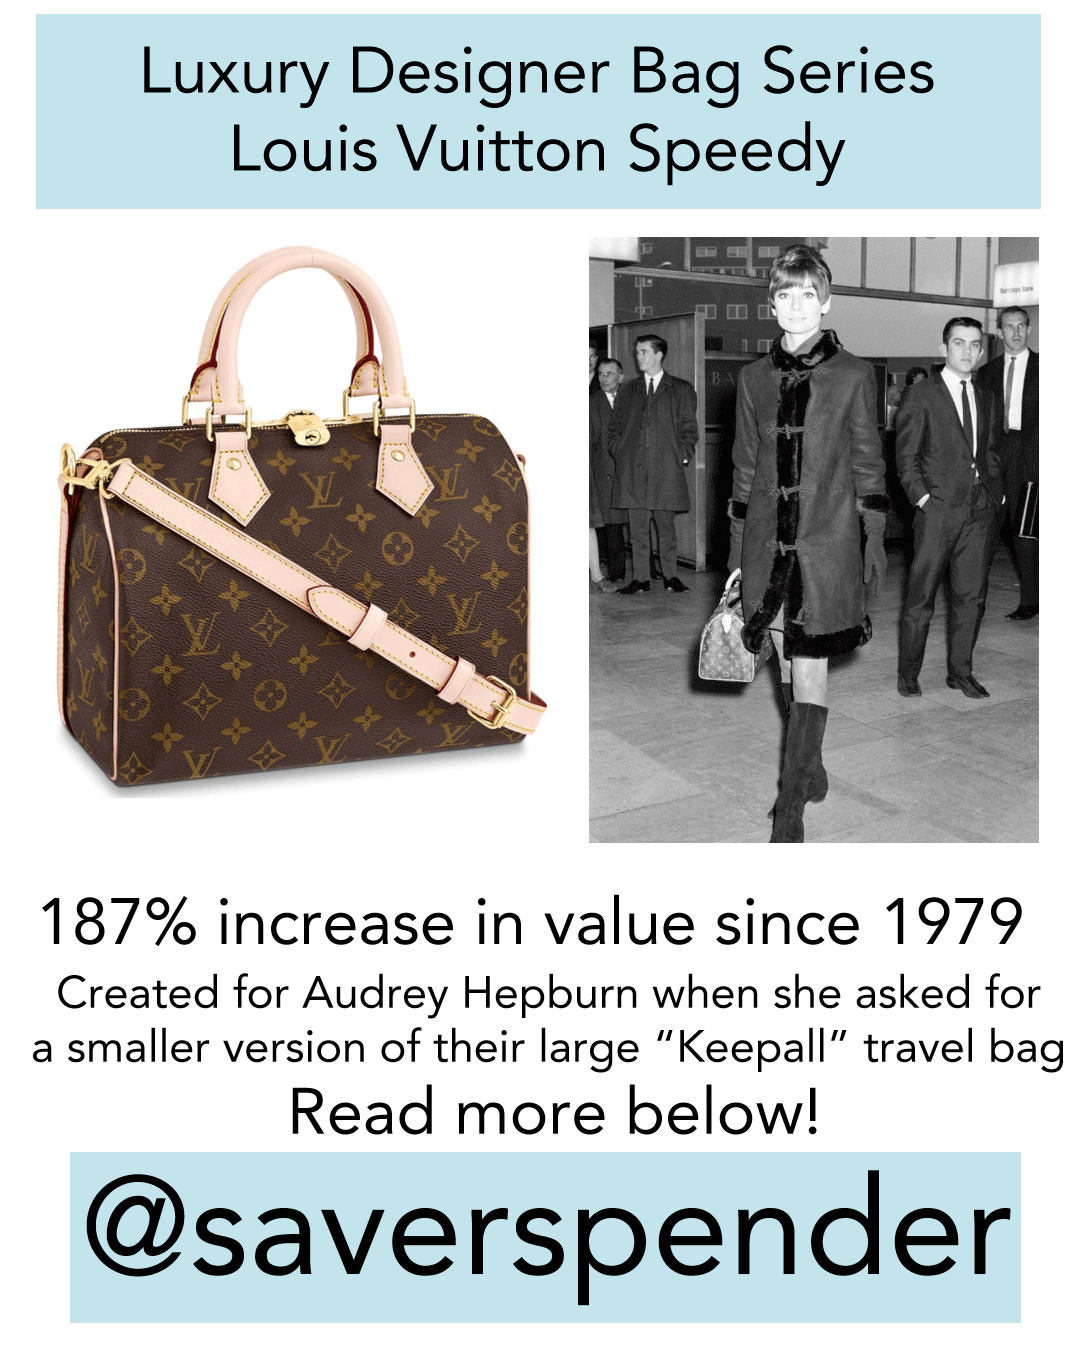 Louis vuitton bag worth investment social capital investment definition